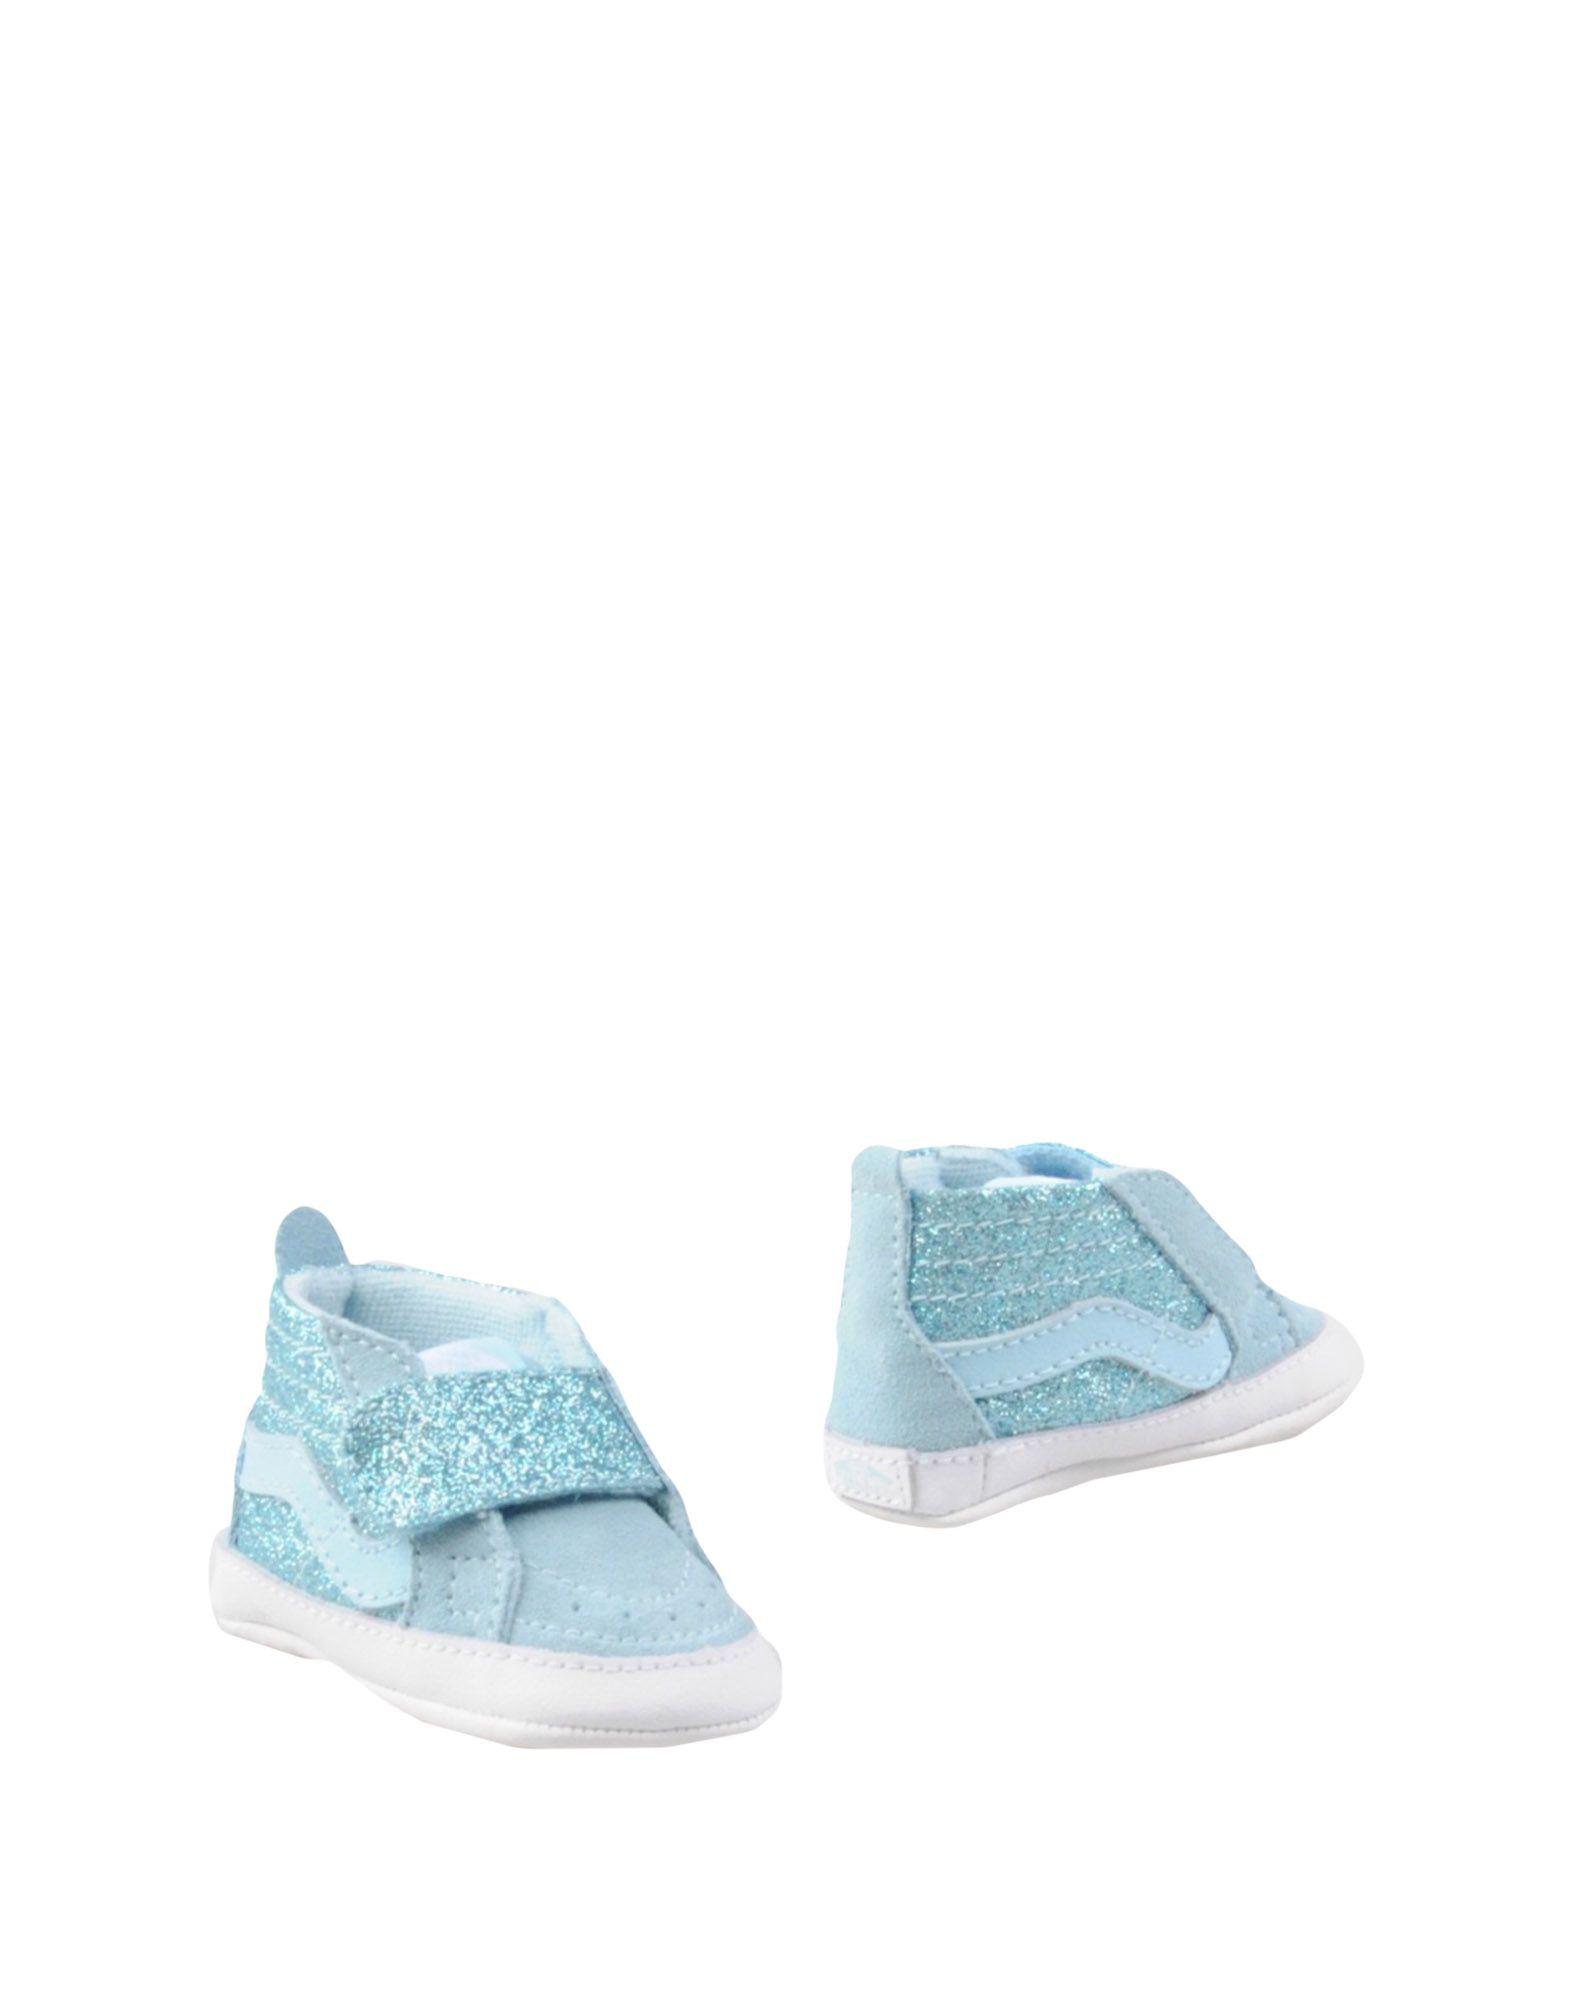 Newborn Shoes Vans Women S Blue Newborn Shoes